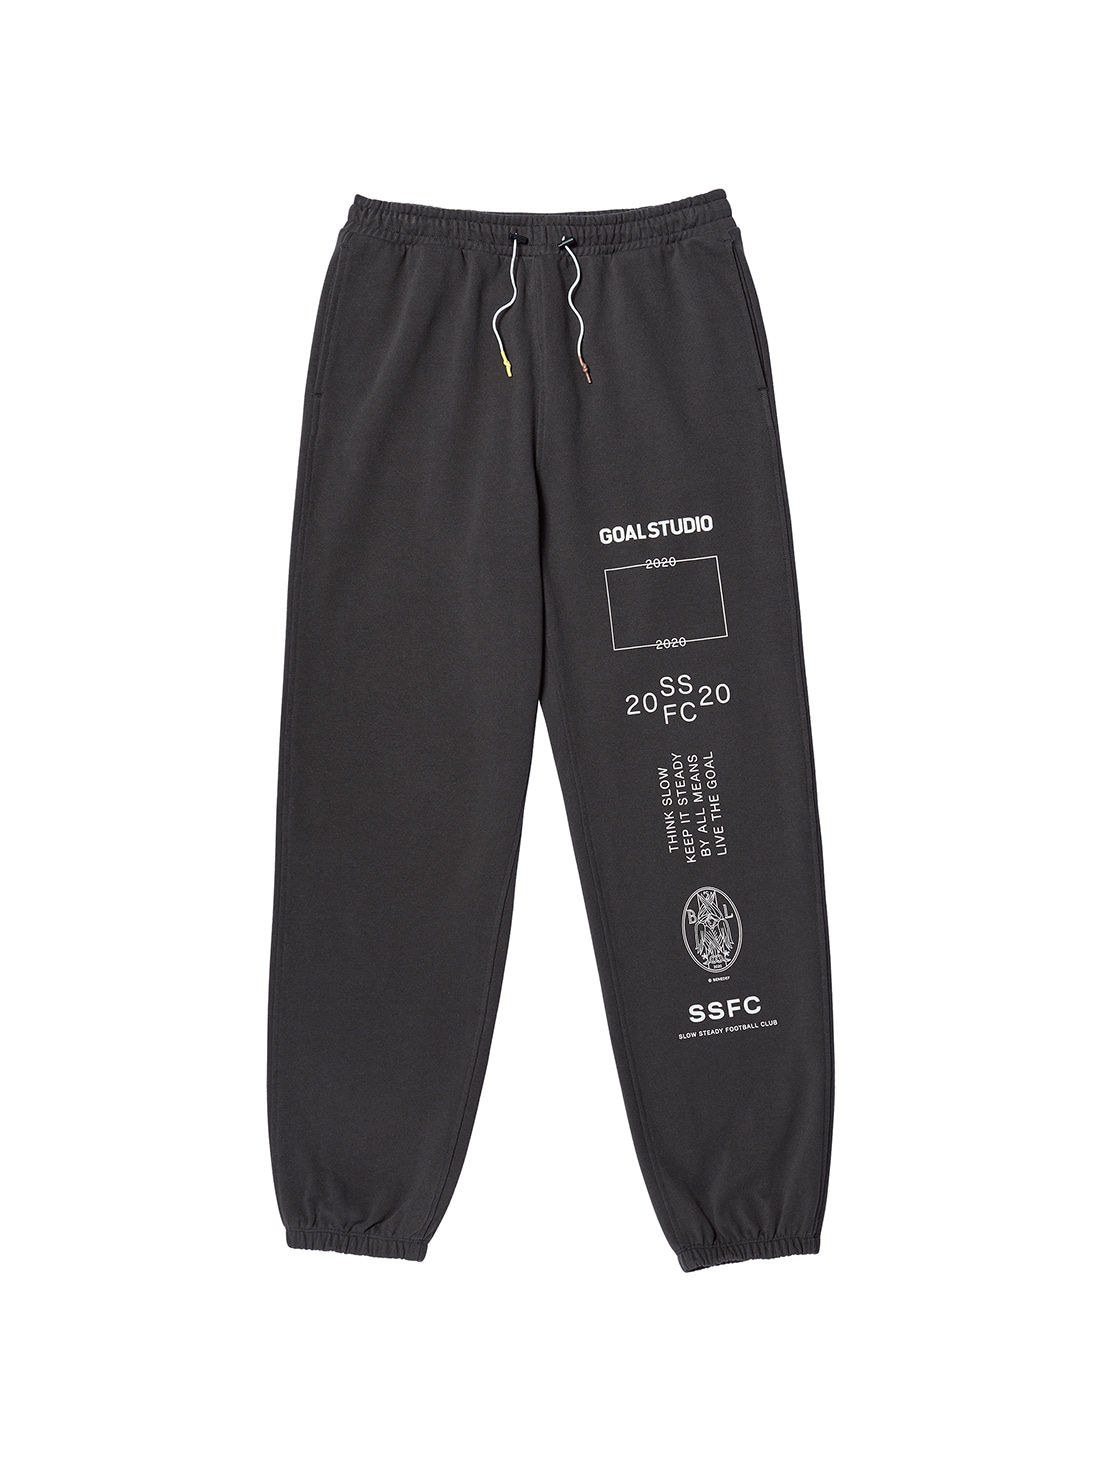 GOALSTUDIO SSFC JERSEY PANTS - CHARCOAL